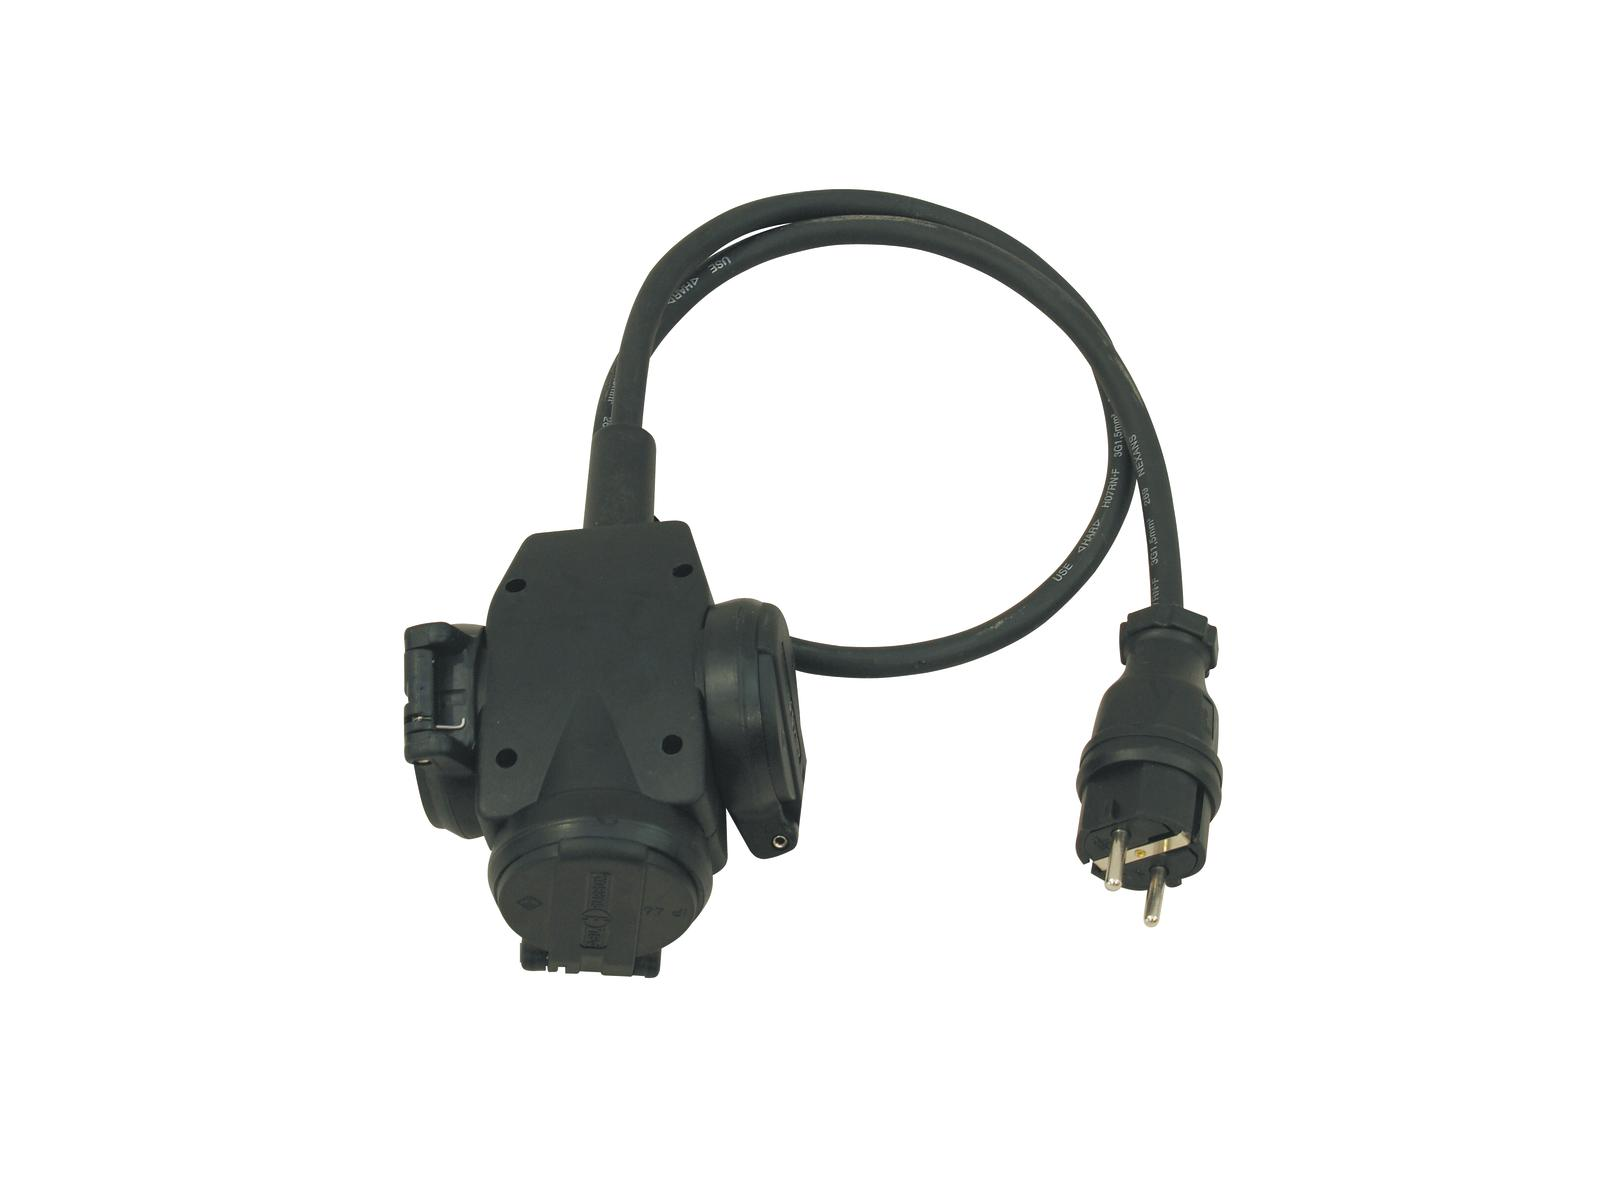 Extension PSSO 3x1,5 1M cable H07RN 250 V / 16 A triple socket